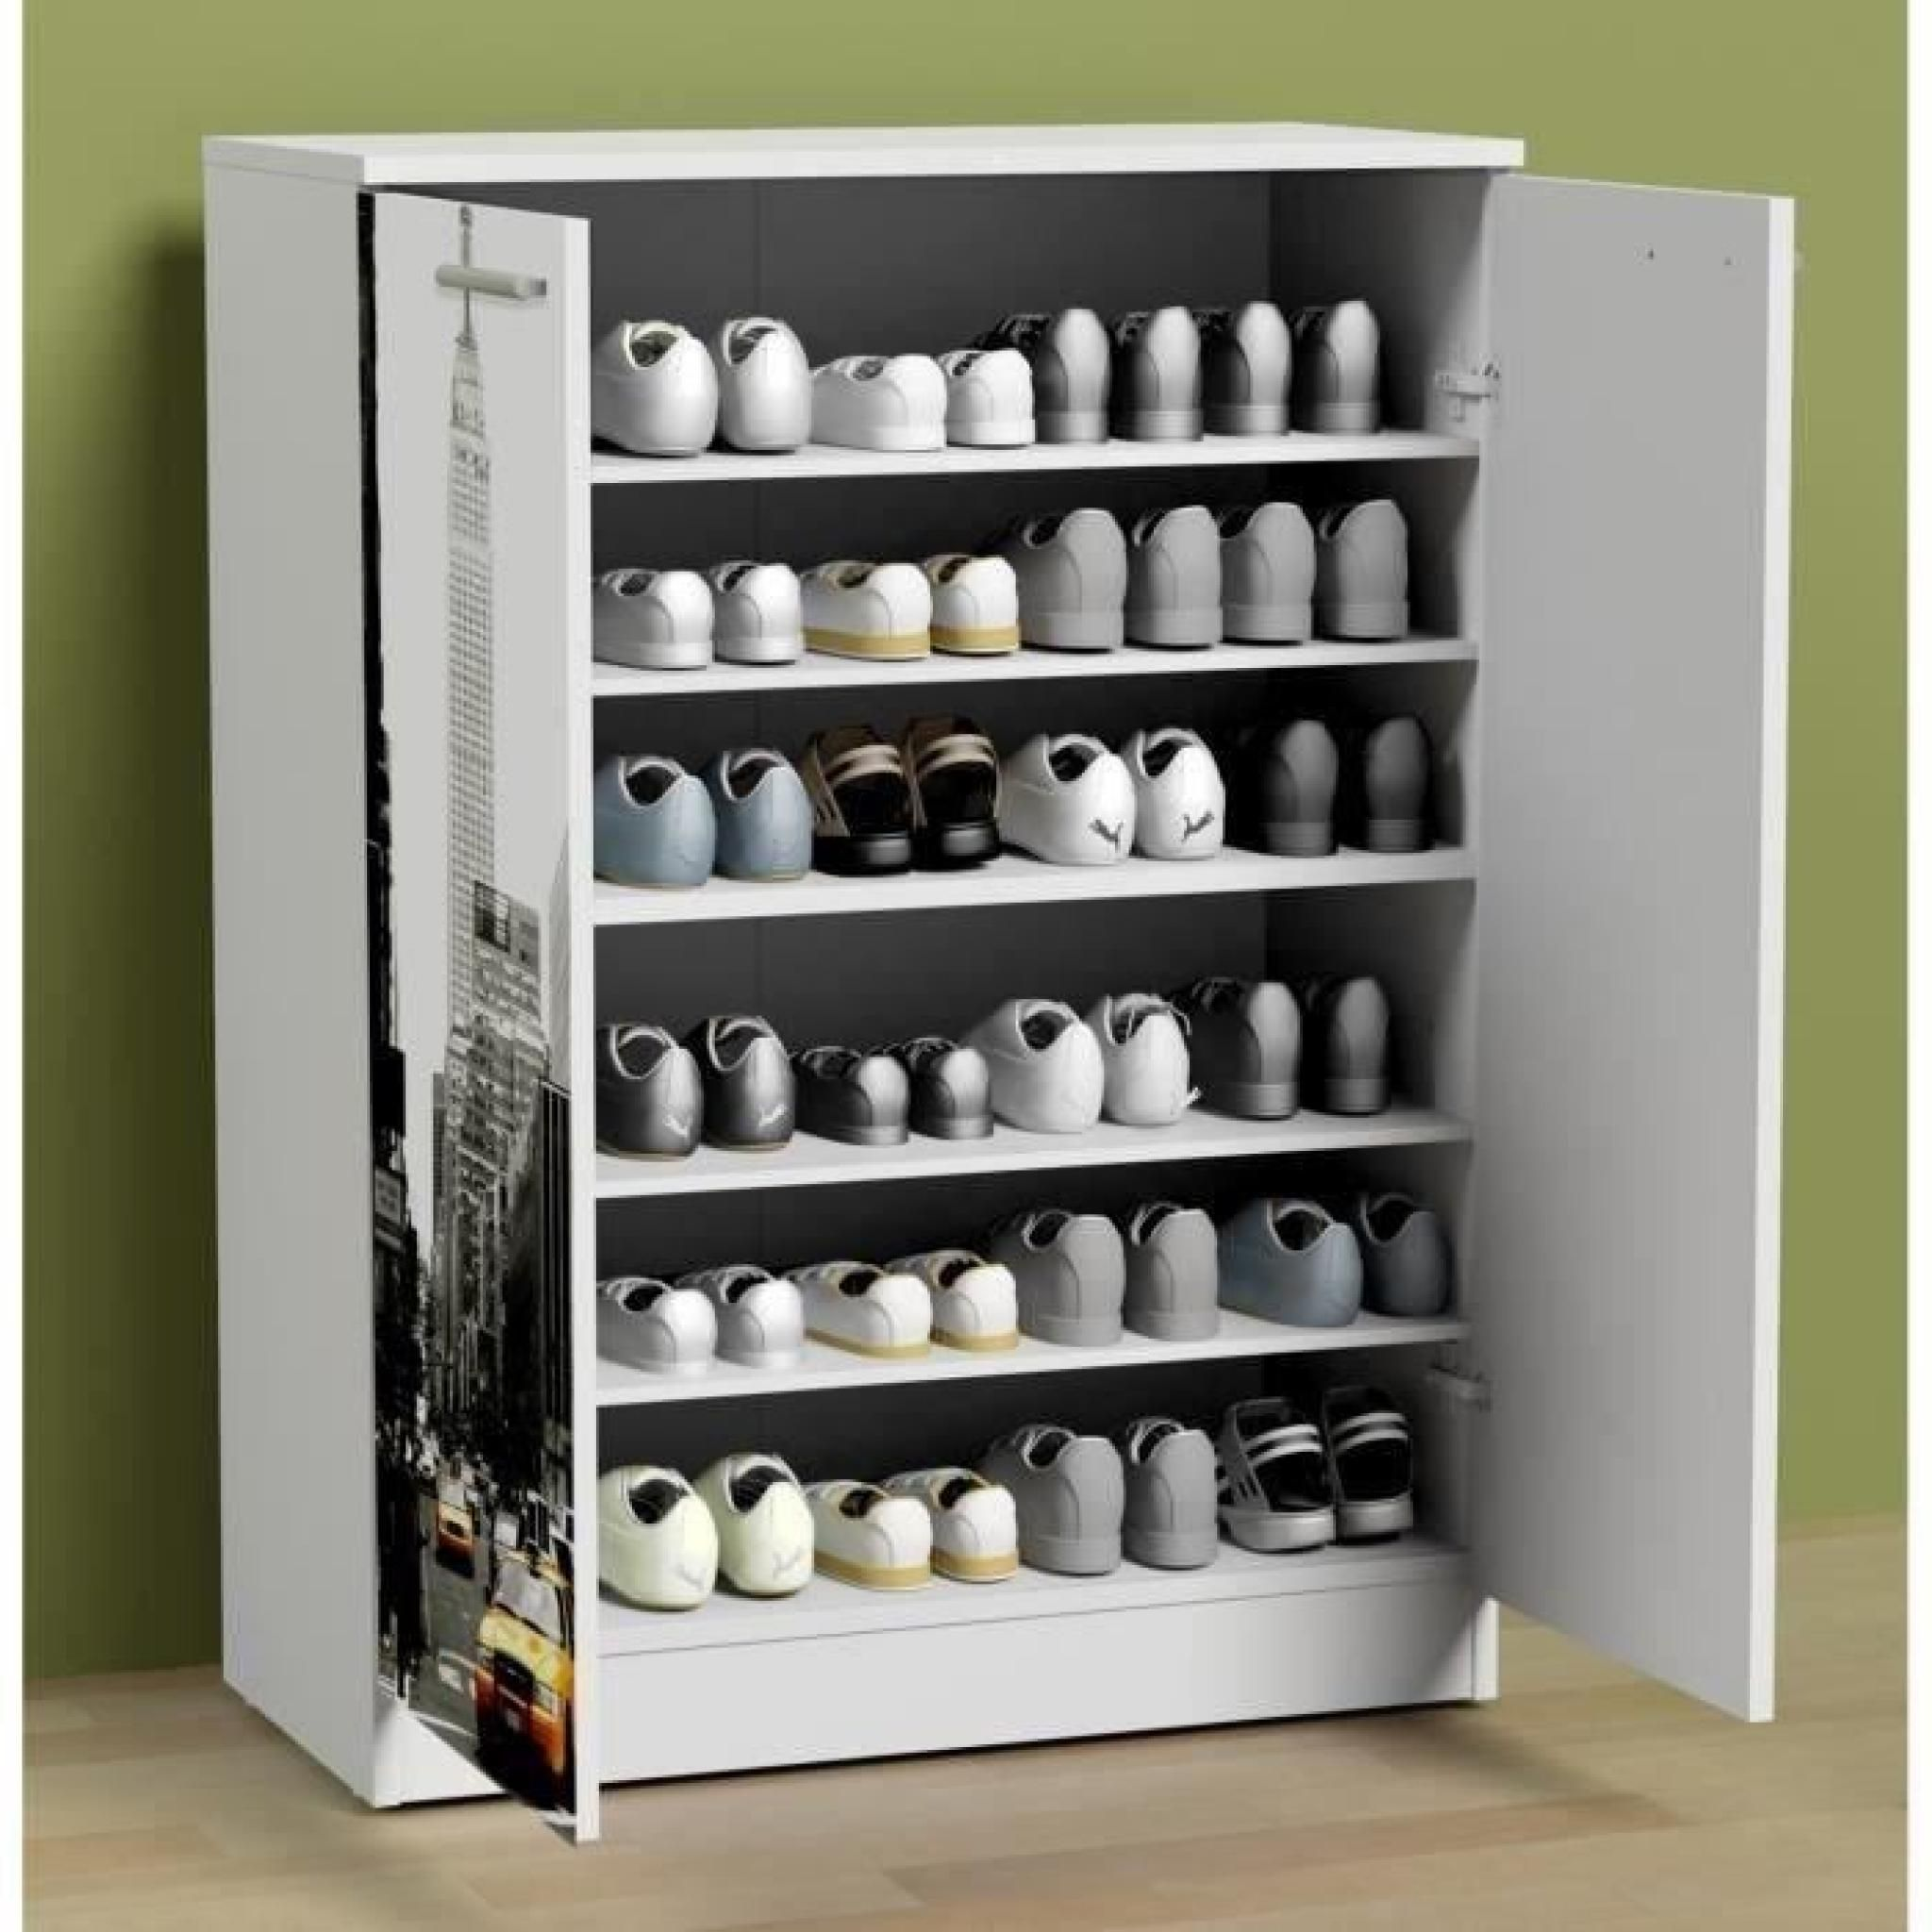 Impressionnant Meuble A Chaussures 30 Paires Shoe Cabinet Cool Furniture Reupholster Furniture